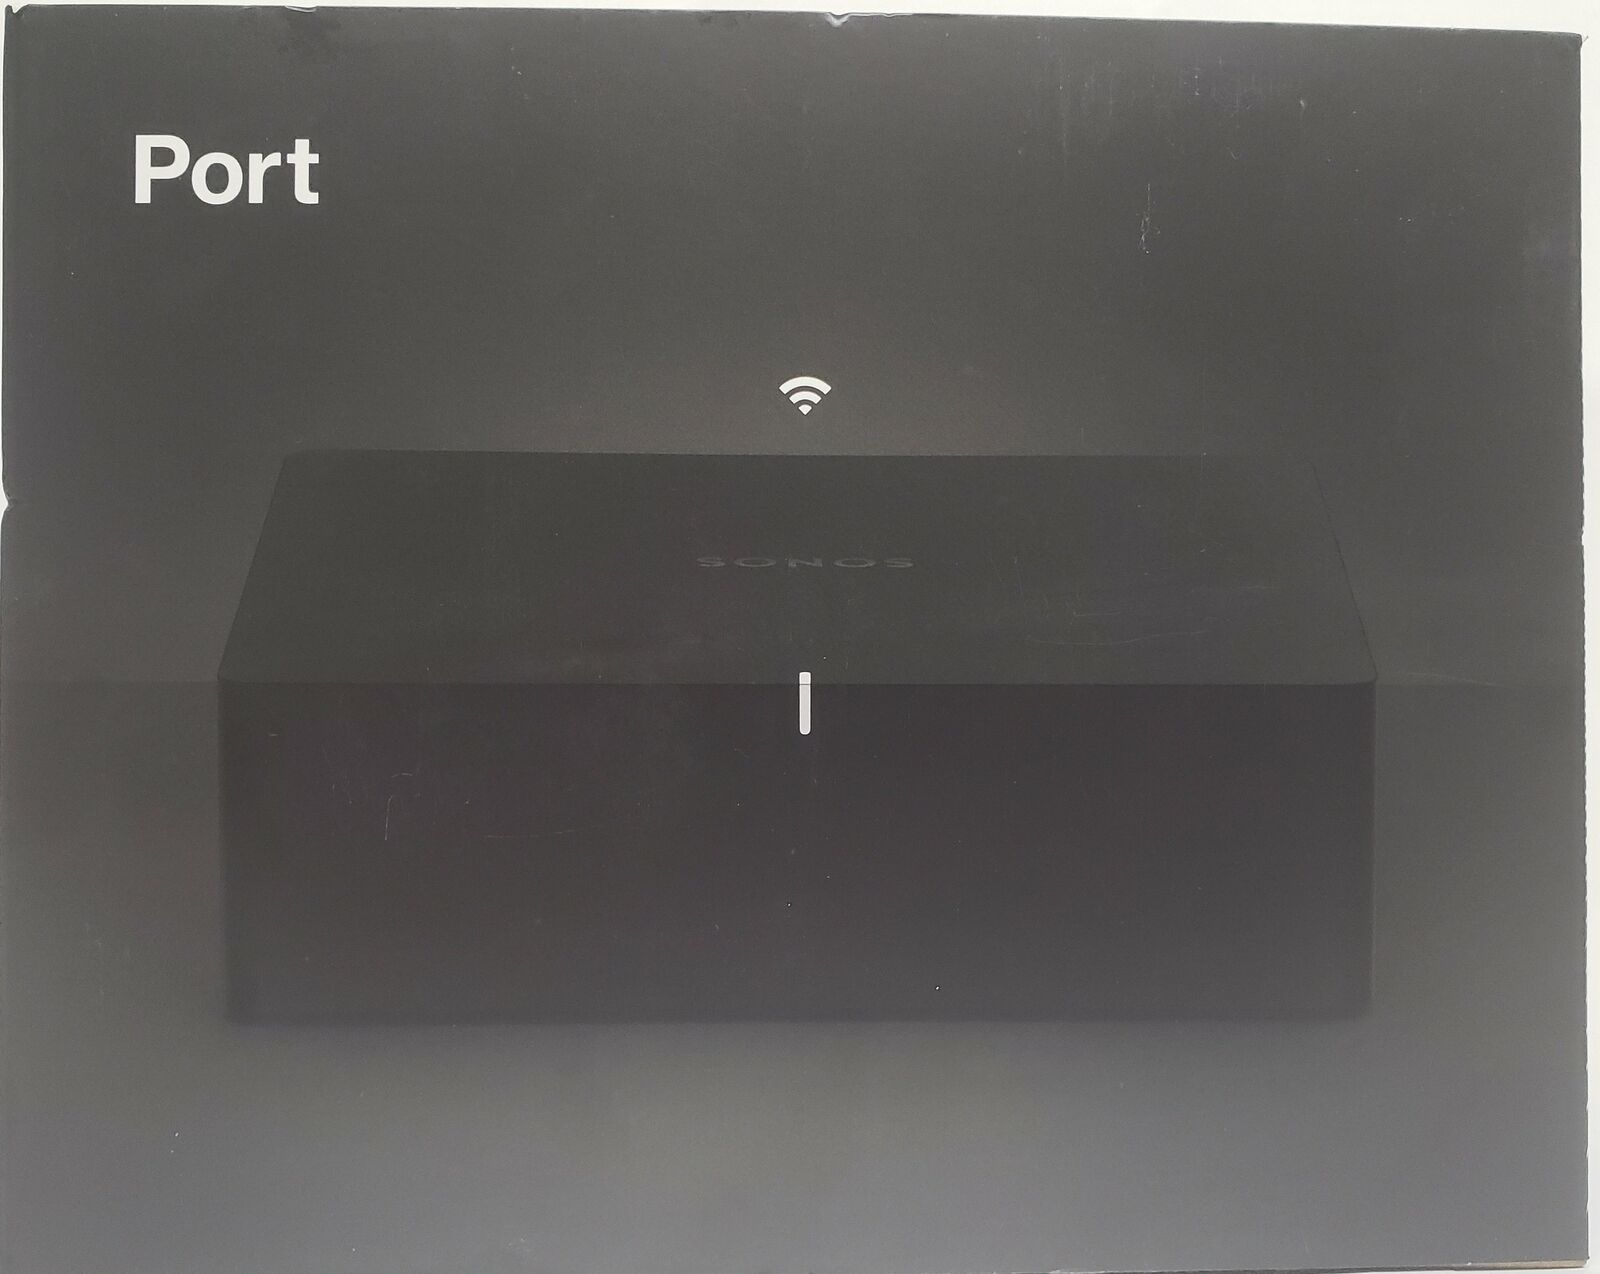 Sonos - Port Streaming Media Player - PORT1US1BLK media player port port1us1blk sonos streaming